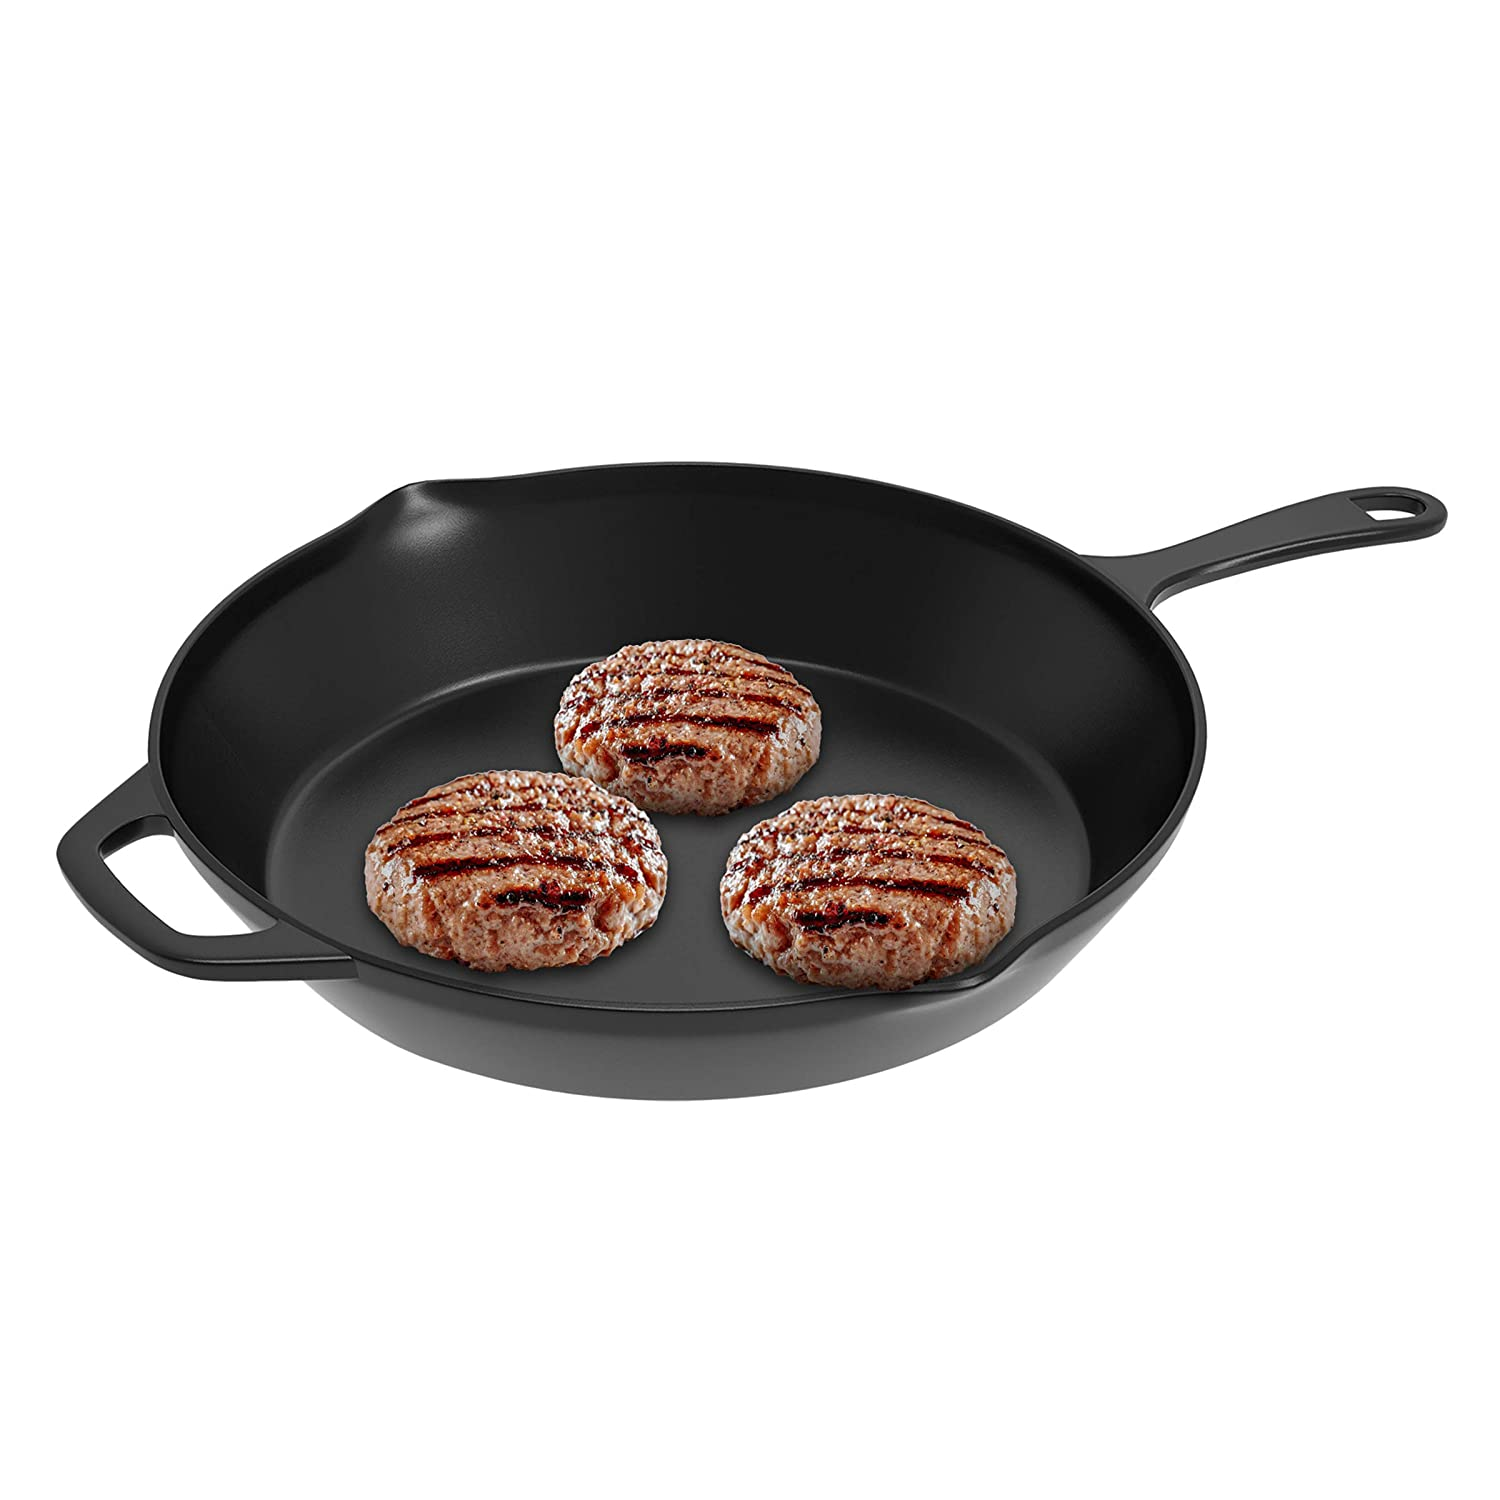 """Mini Pizza and More-Kitchen or Camping Cookware Meat Omelets Black Home-Complete HC-50038 Frying Pan-Cast Iron Pre-Seasoned Nonstick 8/"""" Skillet-Cook Eggs 8"""